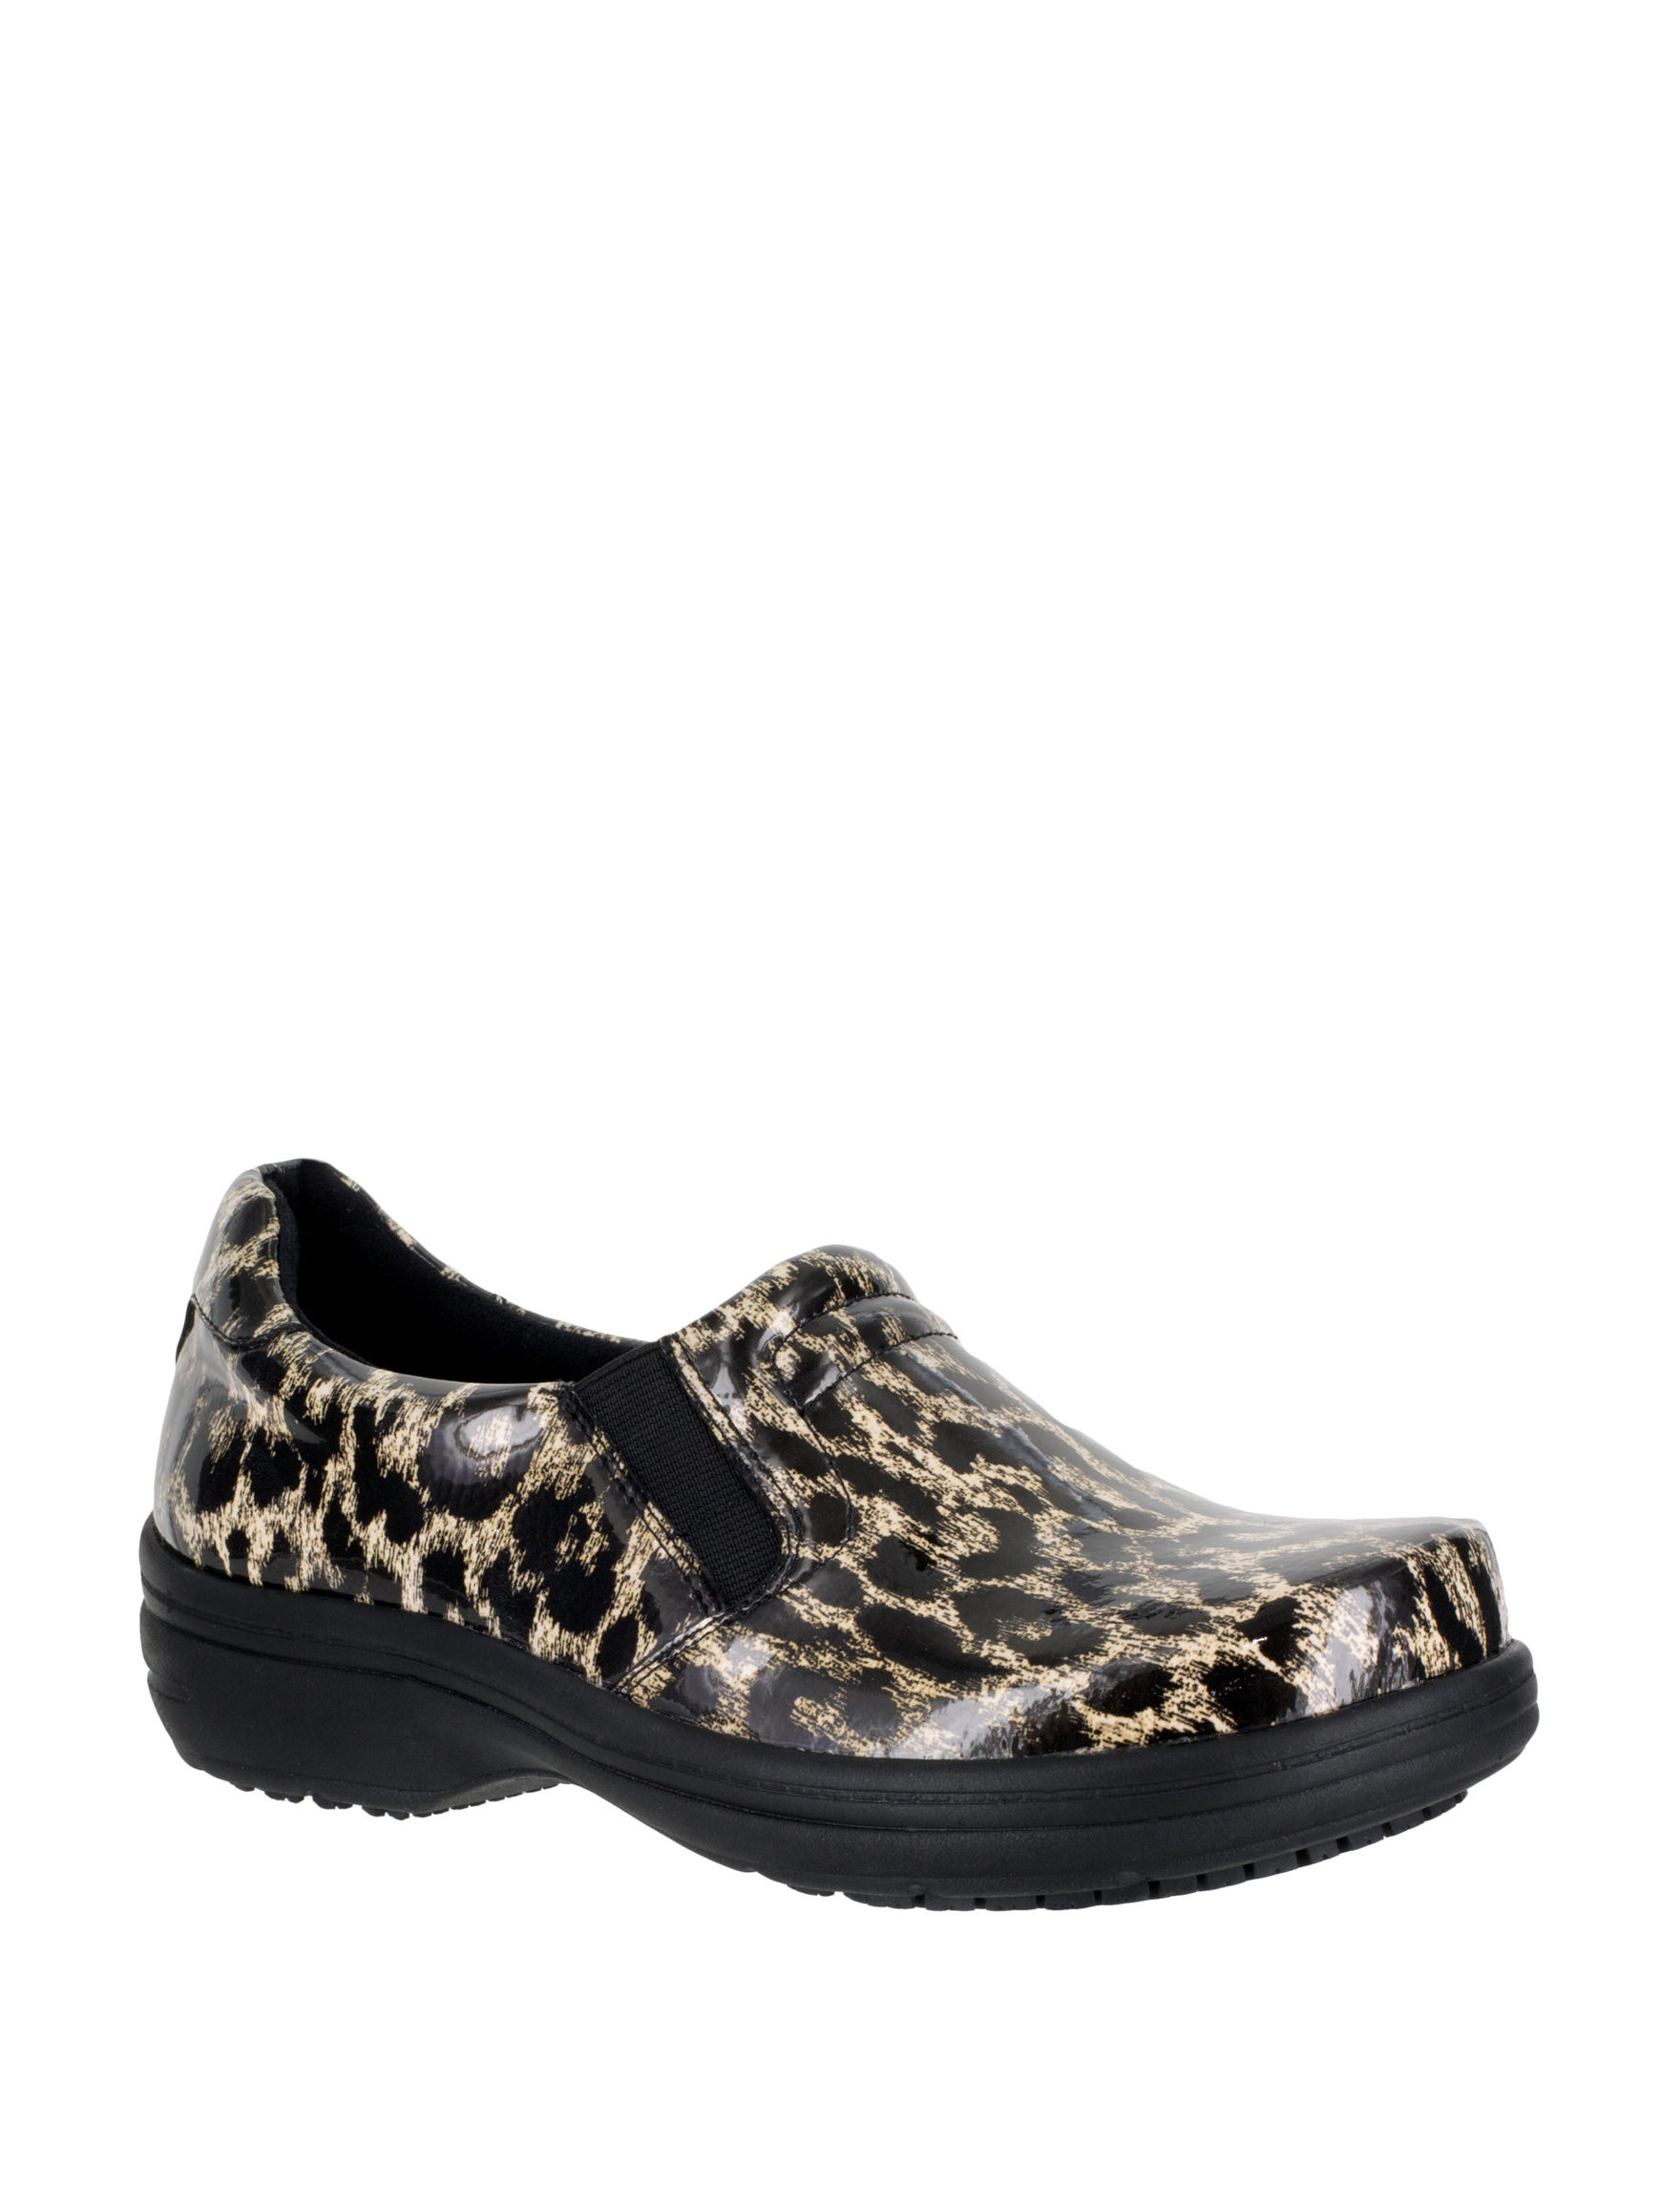 Easy Works by Easy Street Leopard Clogs Slip Resistant